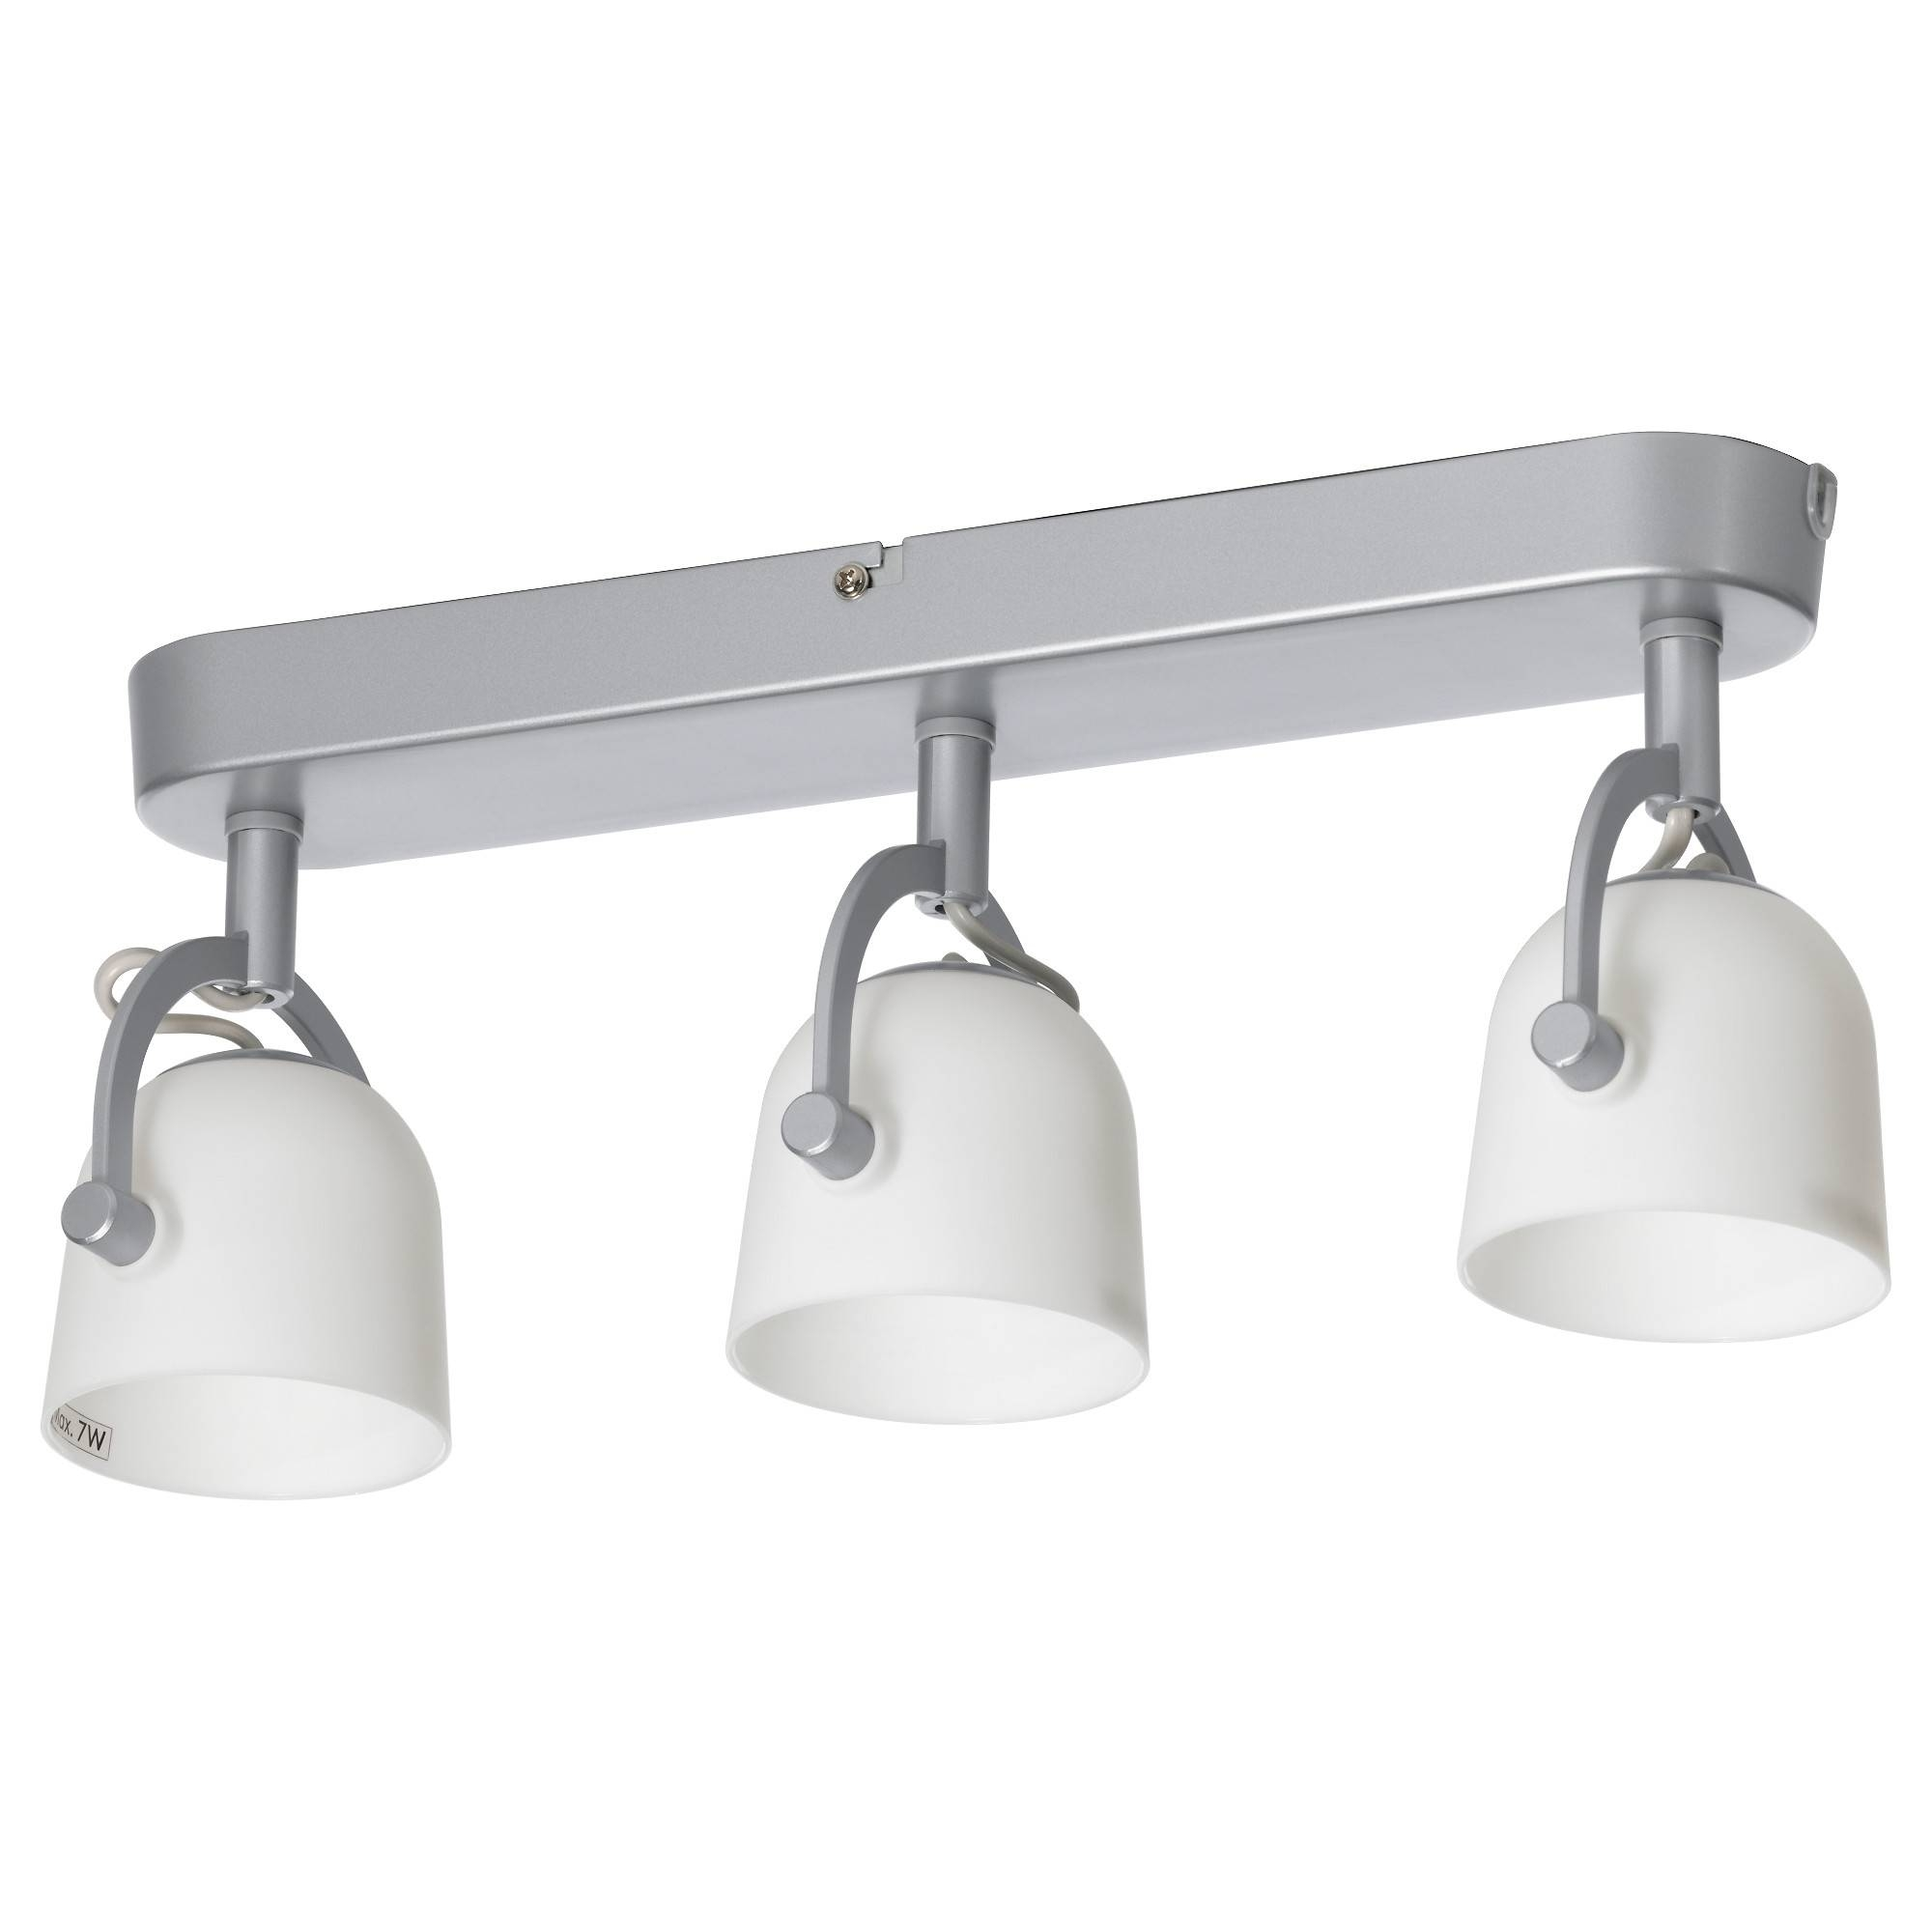 Ceiling Lights & Lamps - Ikea for Ikea Recessed Lighting (Image 2 of 15)